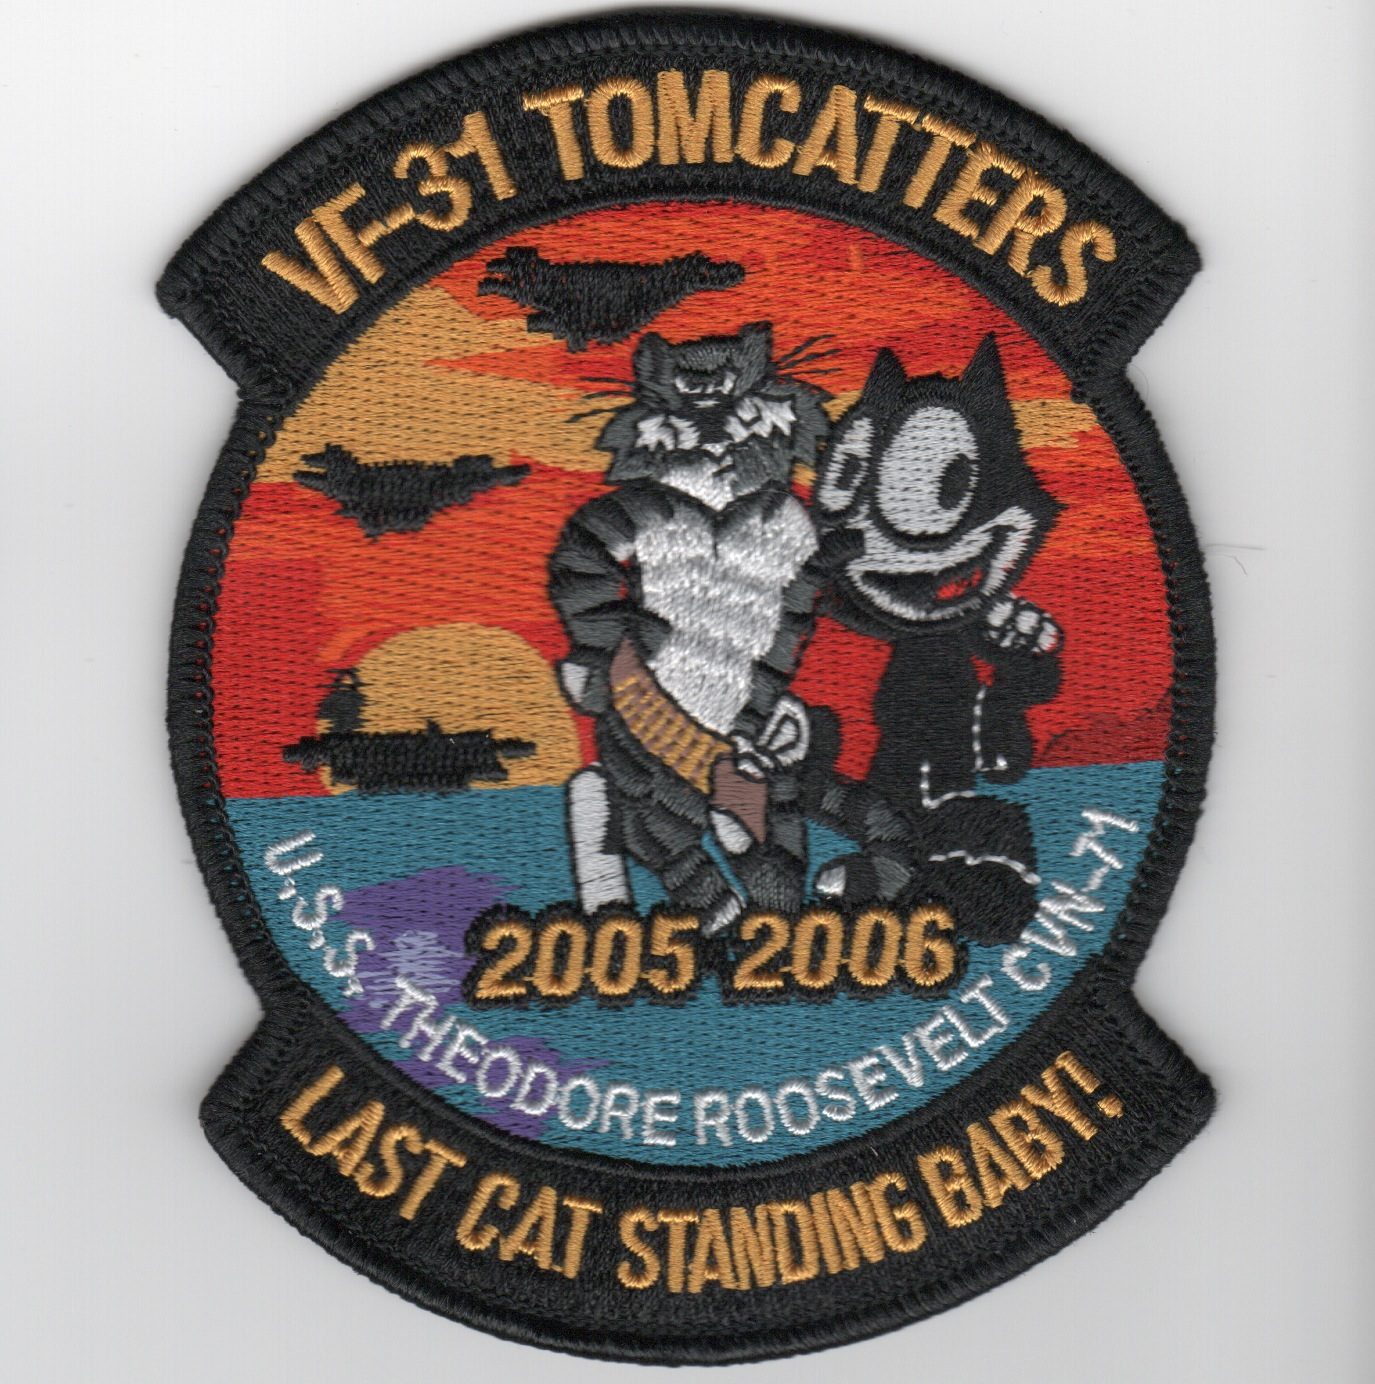 VF-31 'Last Cat Standing' Cruise Patch